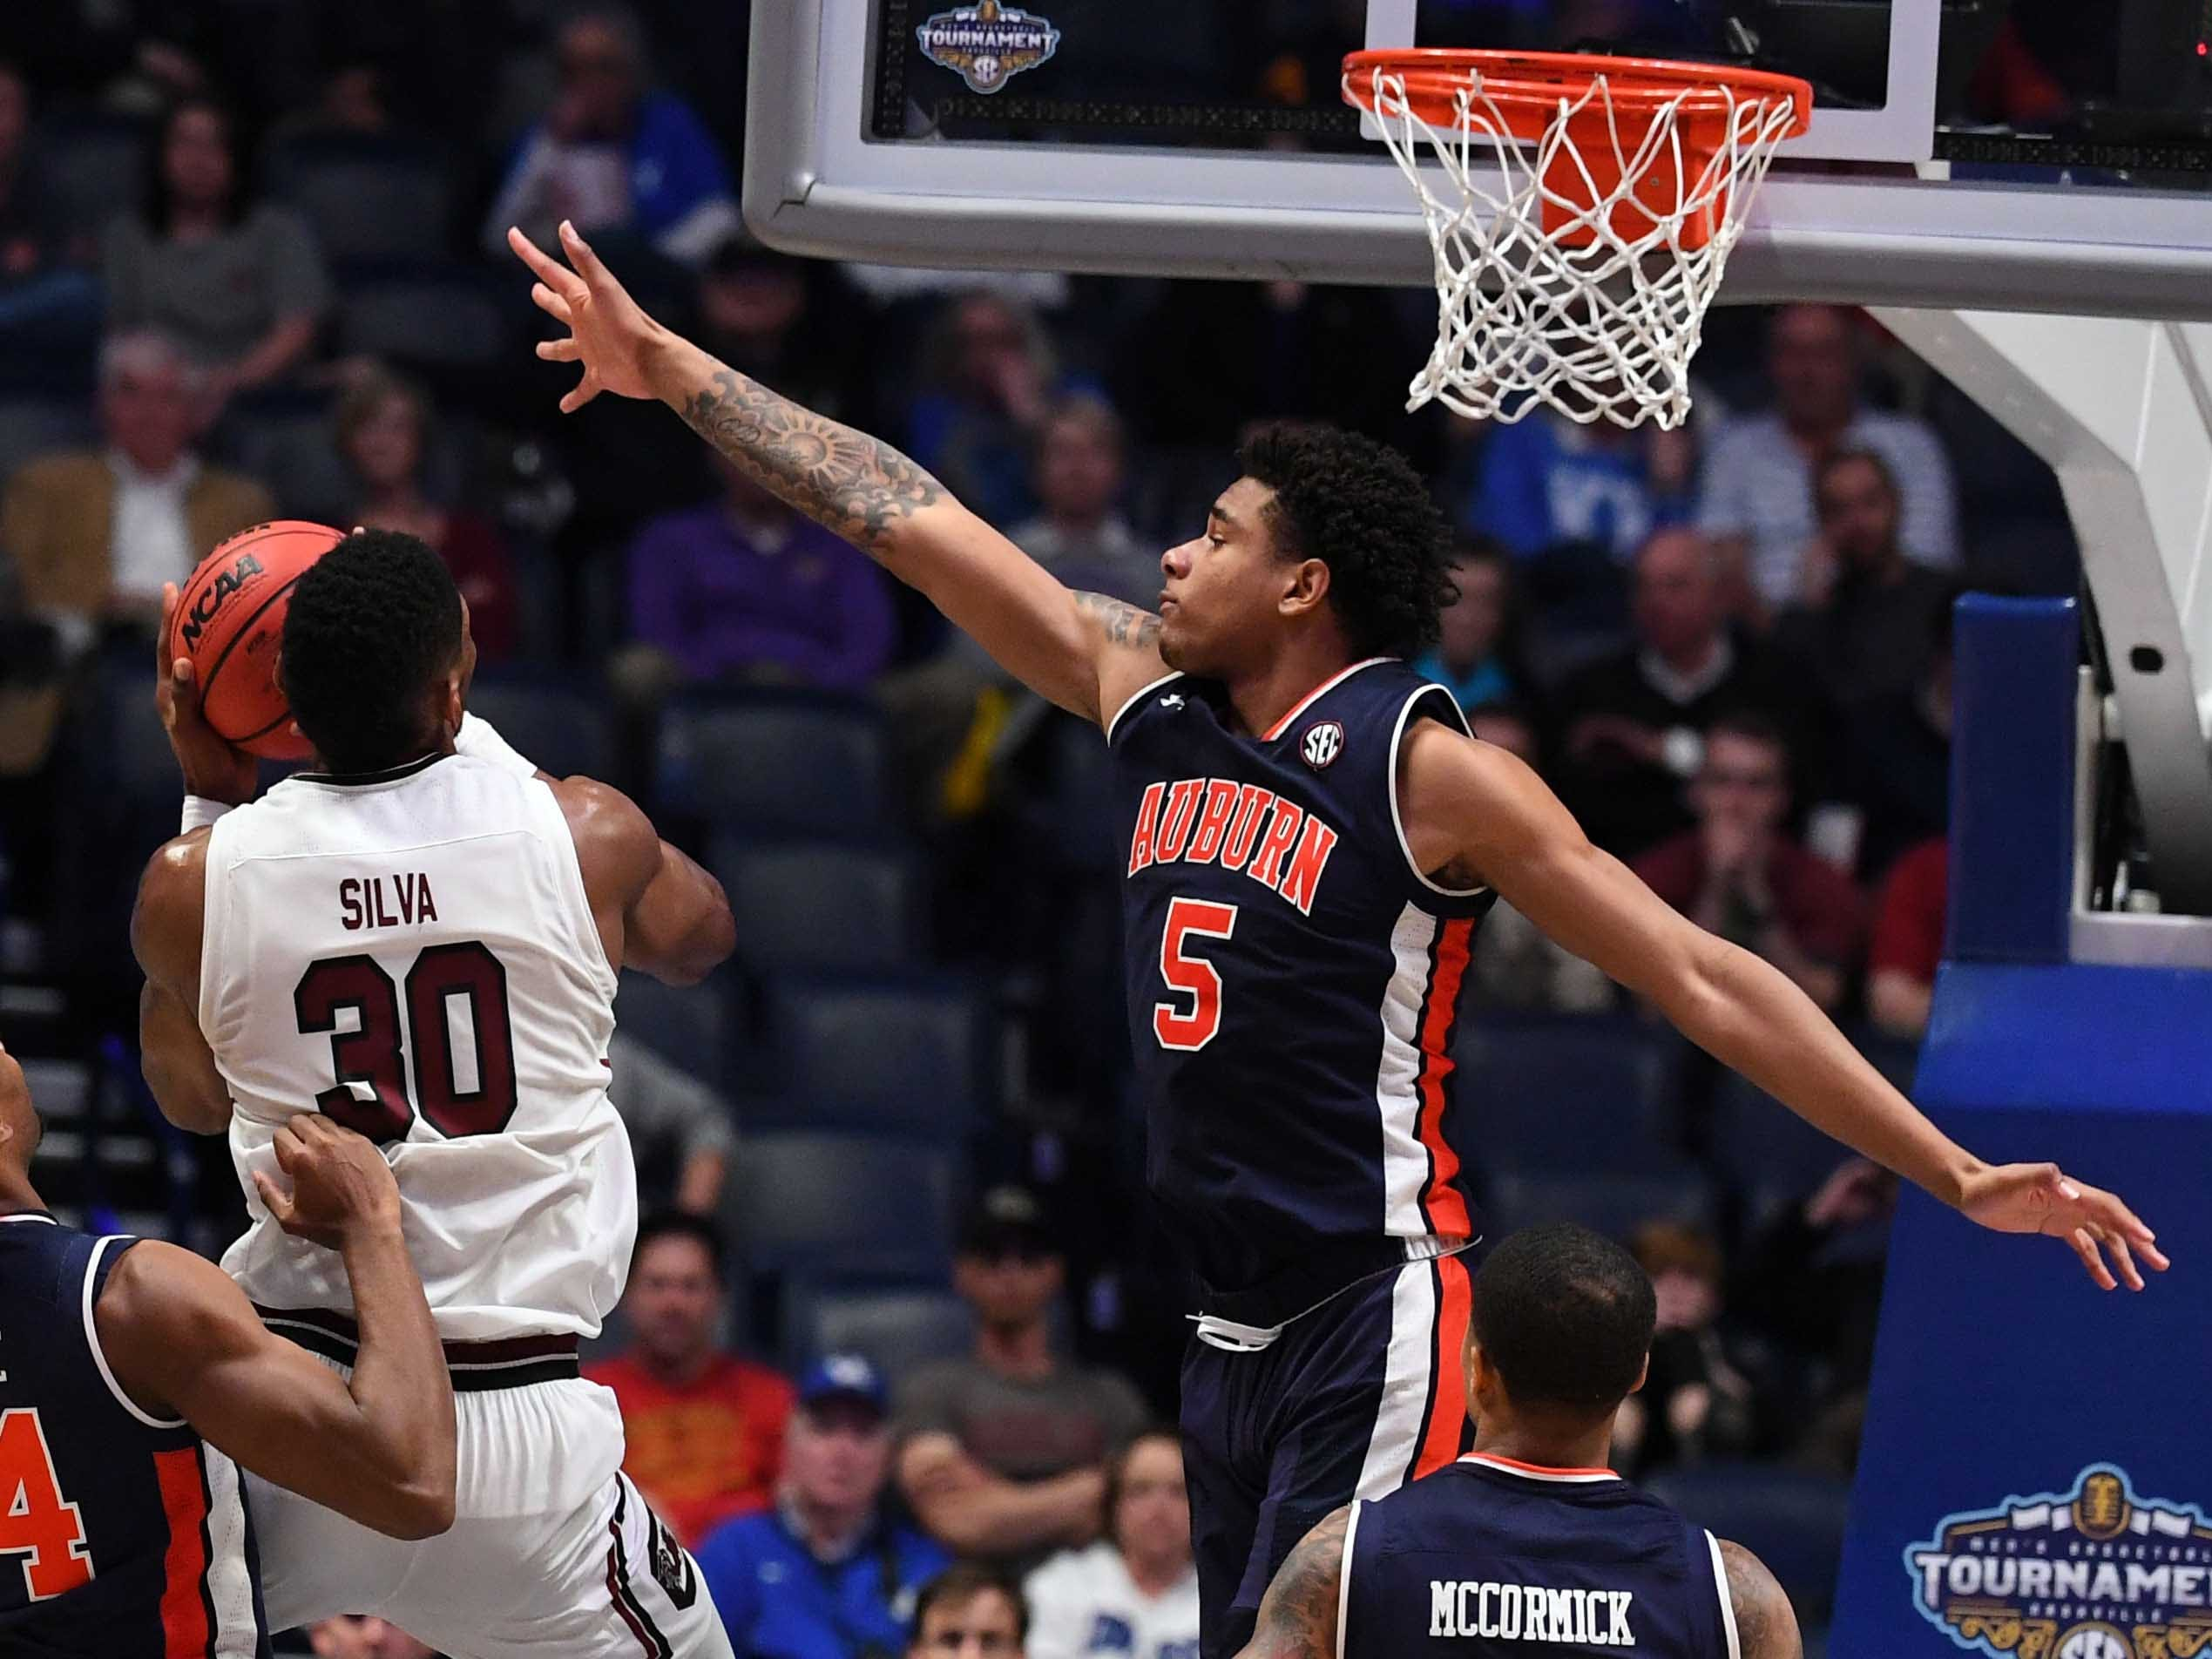 Auburn forward Chuma Okeke (5) defends South Carolina forward Chris Silva (30) during the SEC Tournament on March 15, 2019, in Nashville, Tennessee.